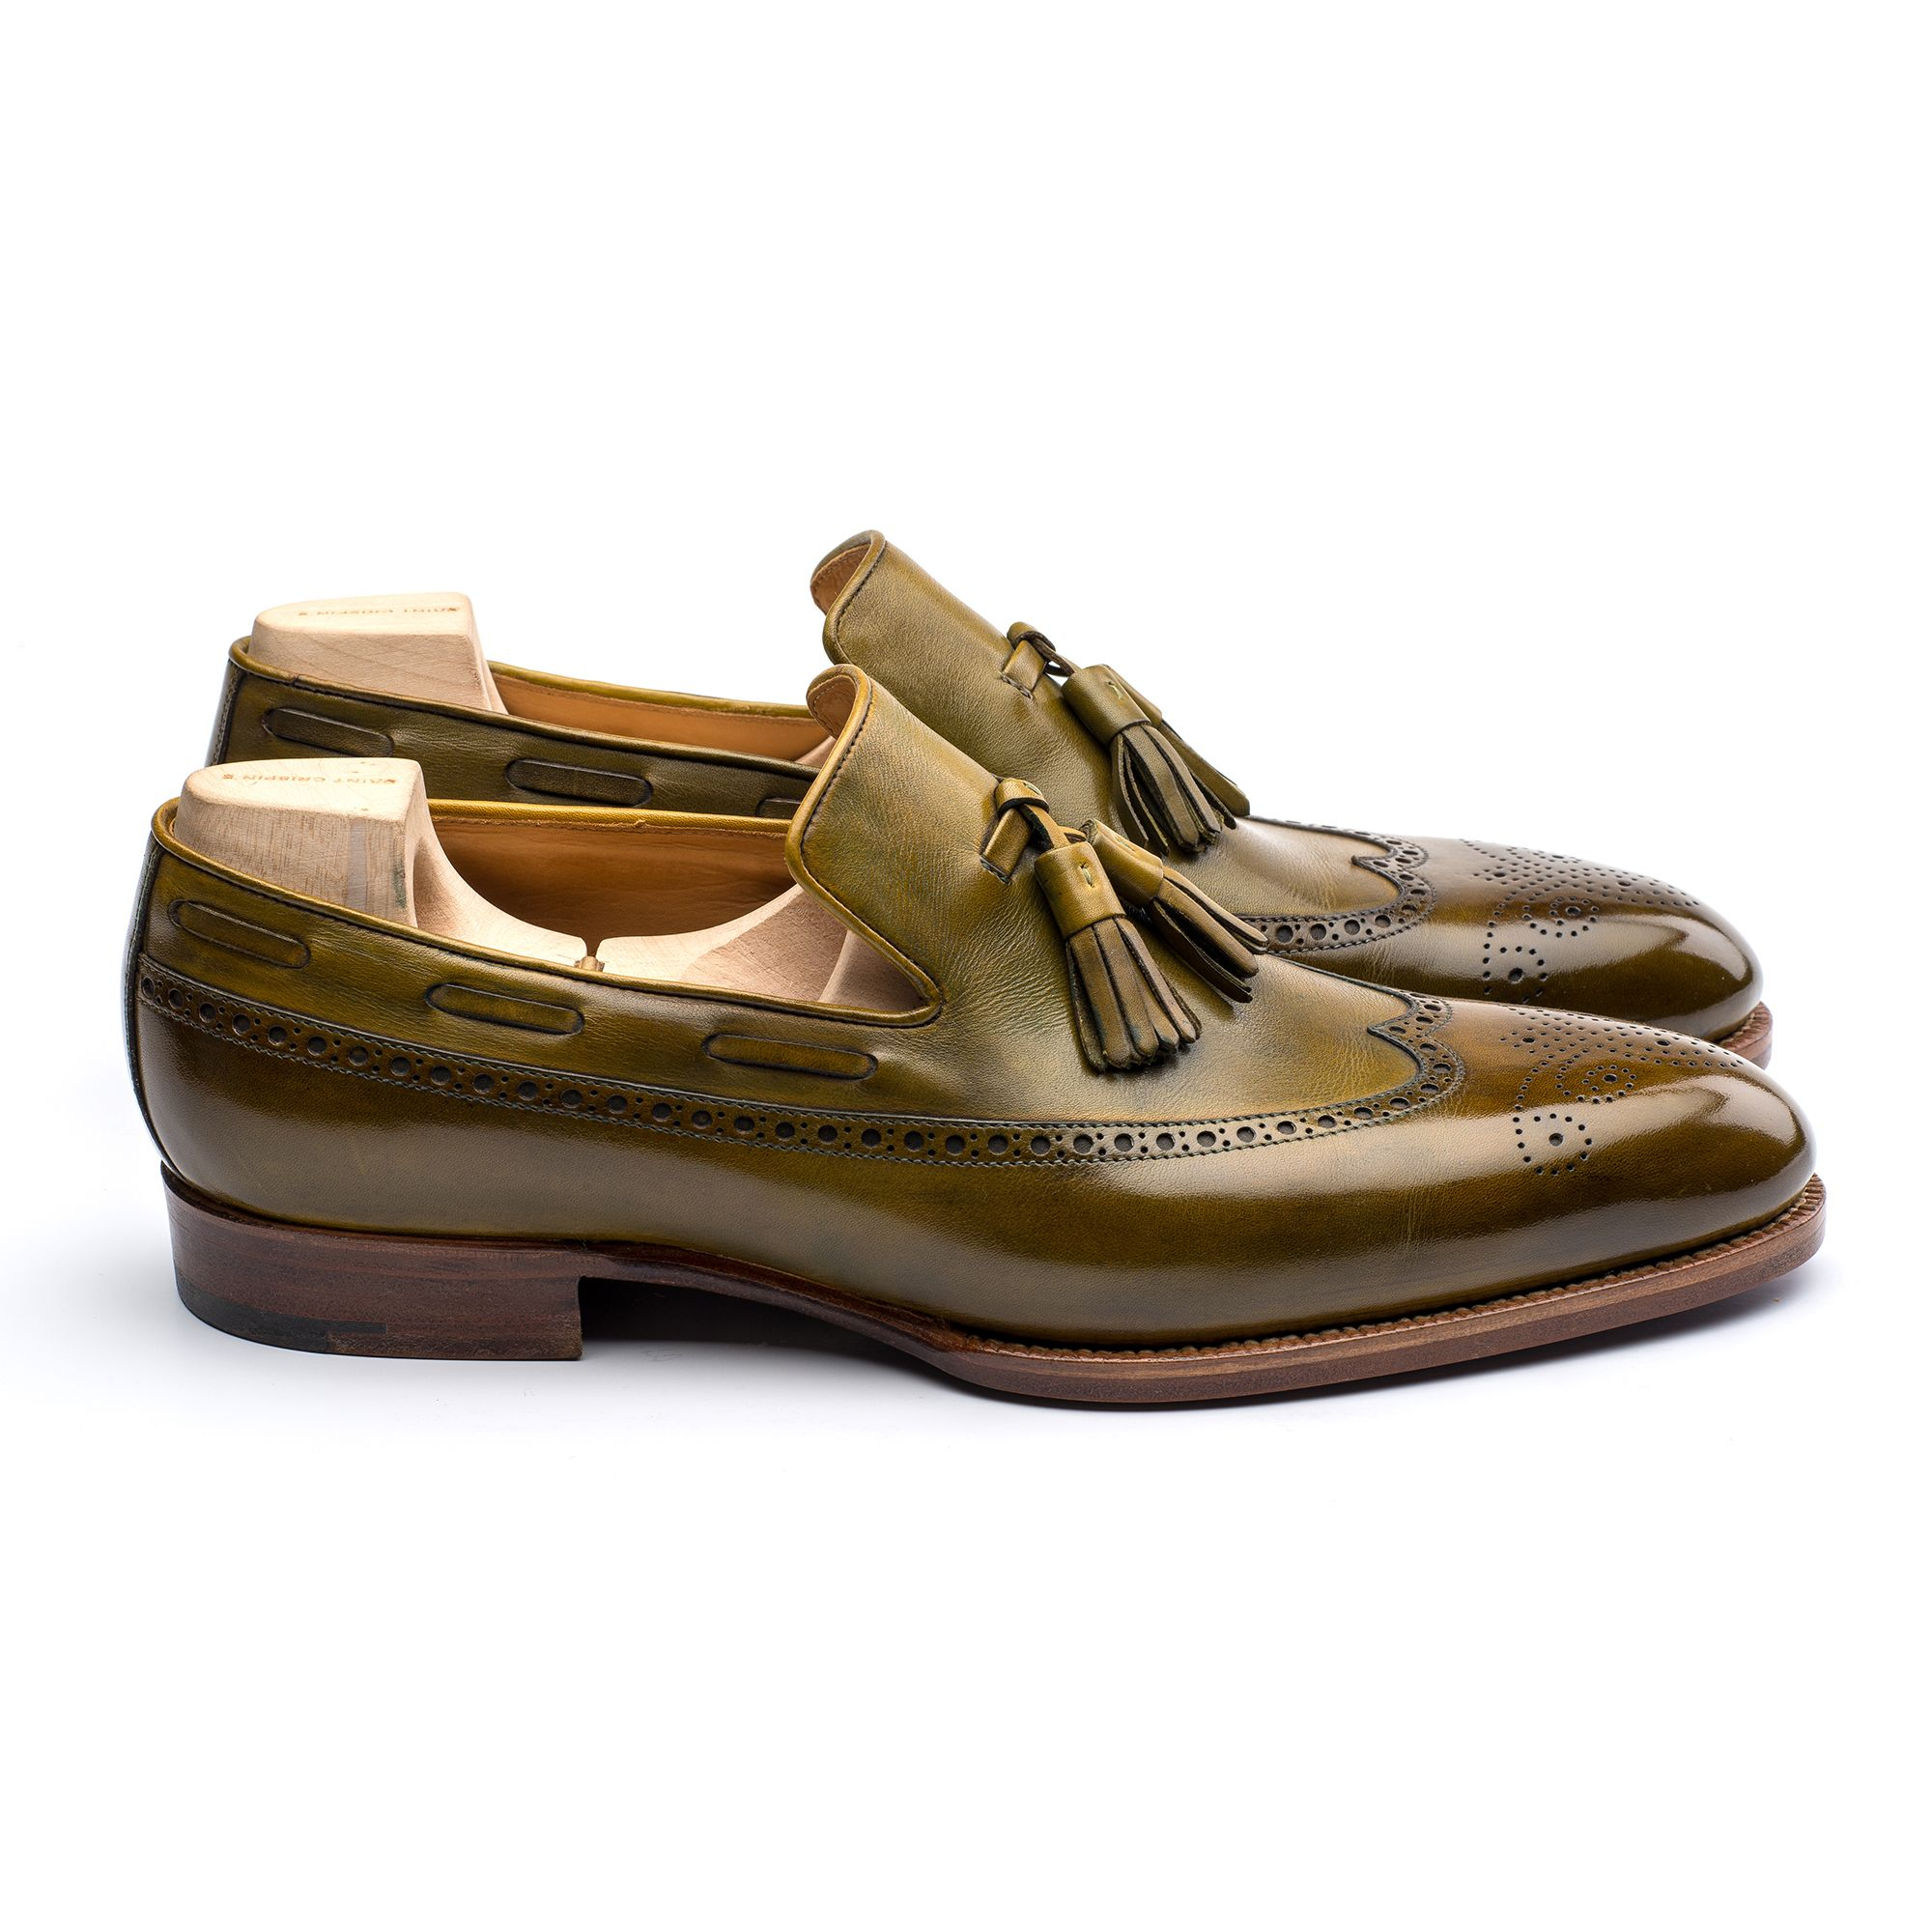 e12b714acf5 Combining the full brogue detailing of long wing oxfords and the casual  elegance of tassel loafers